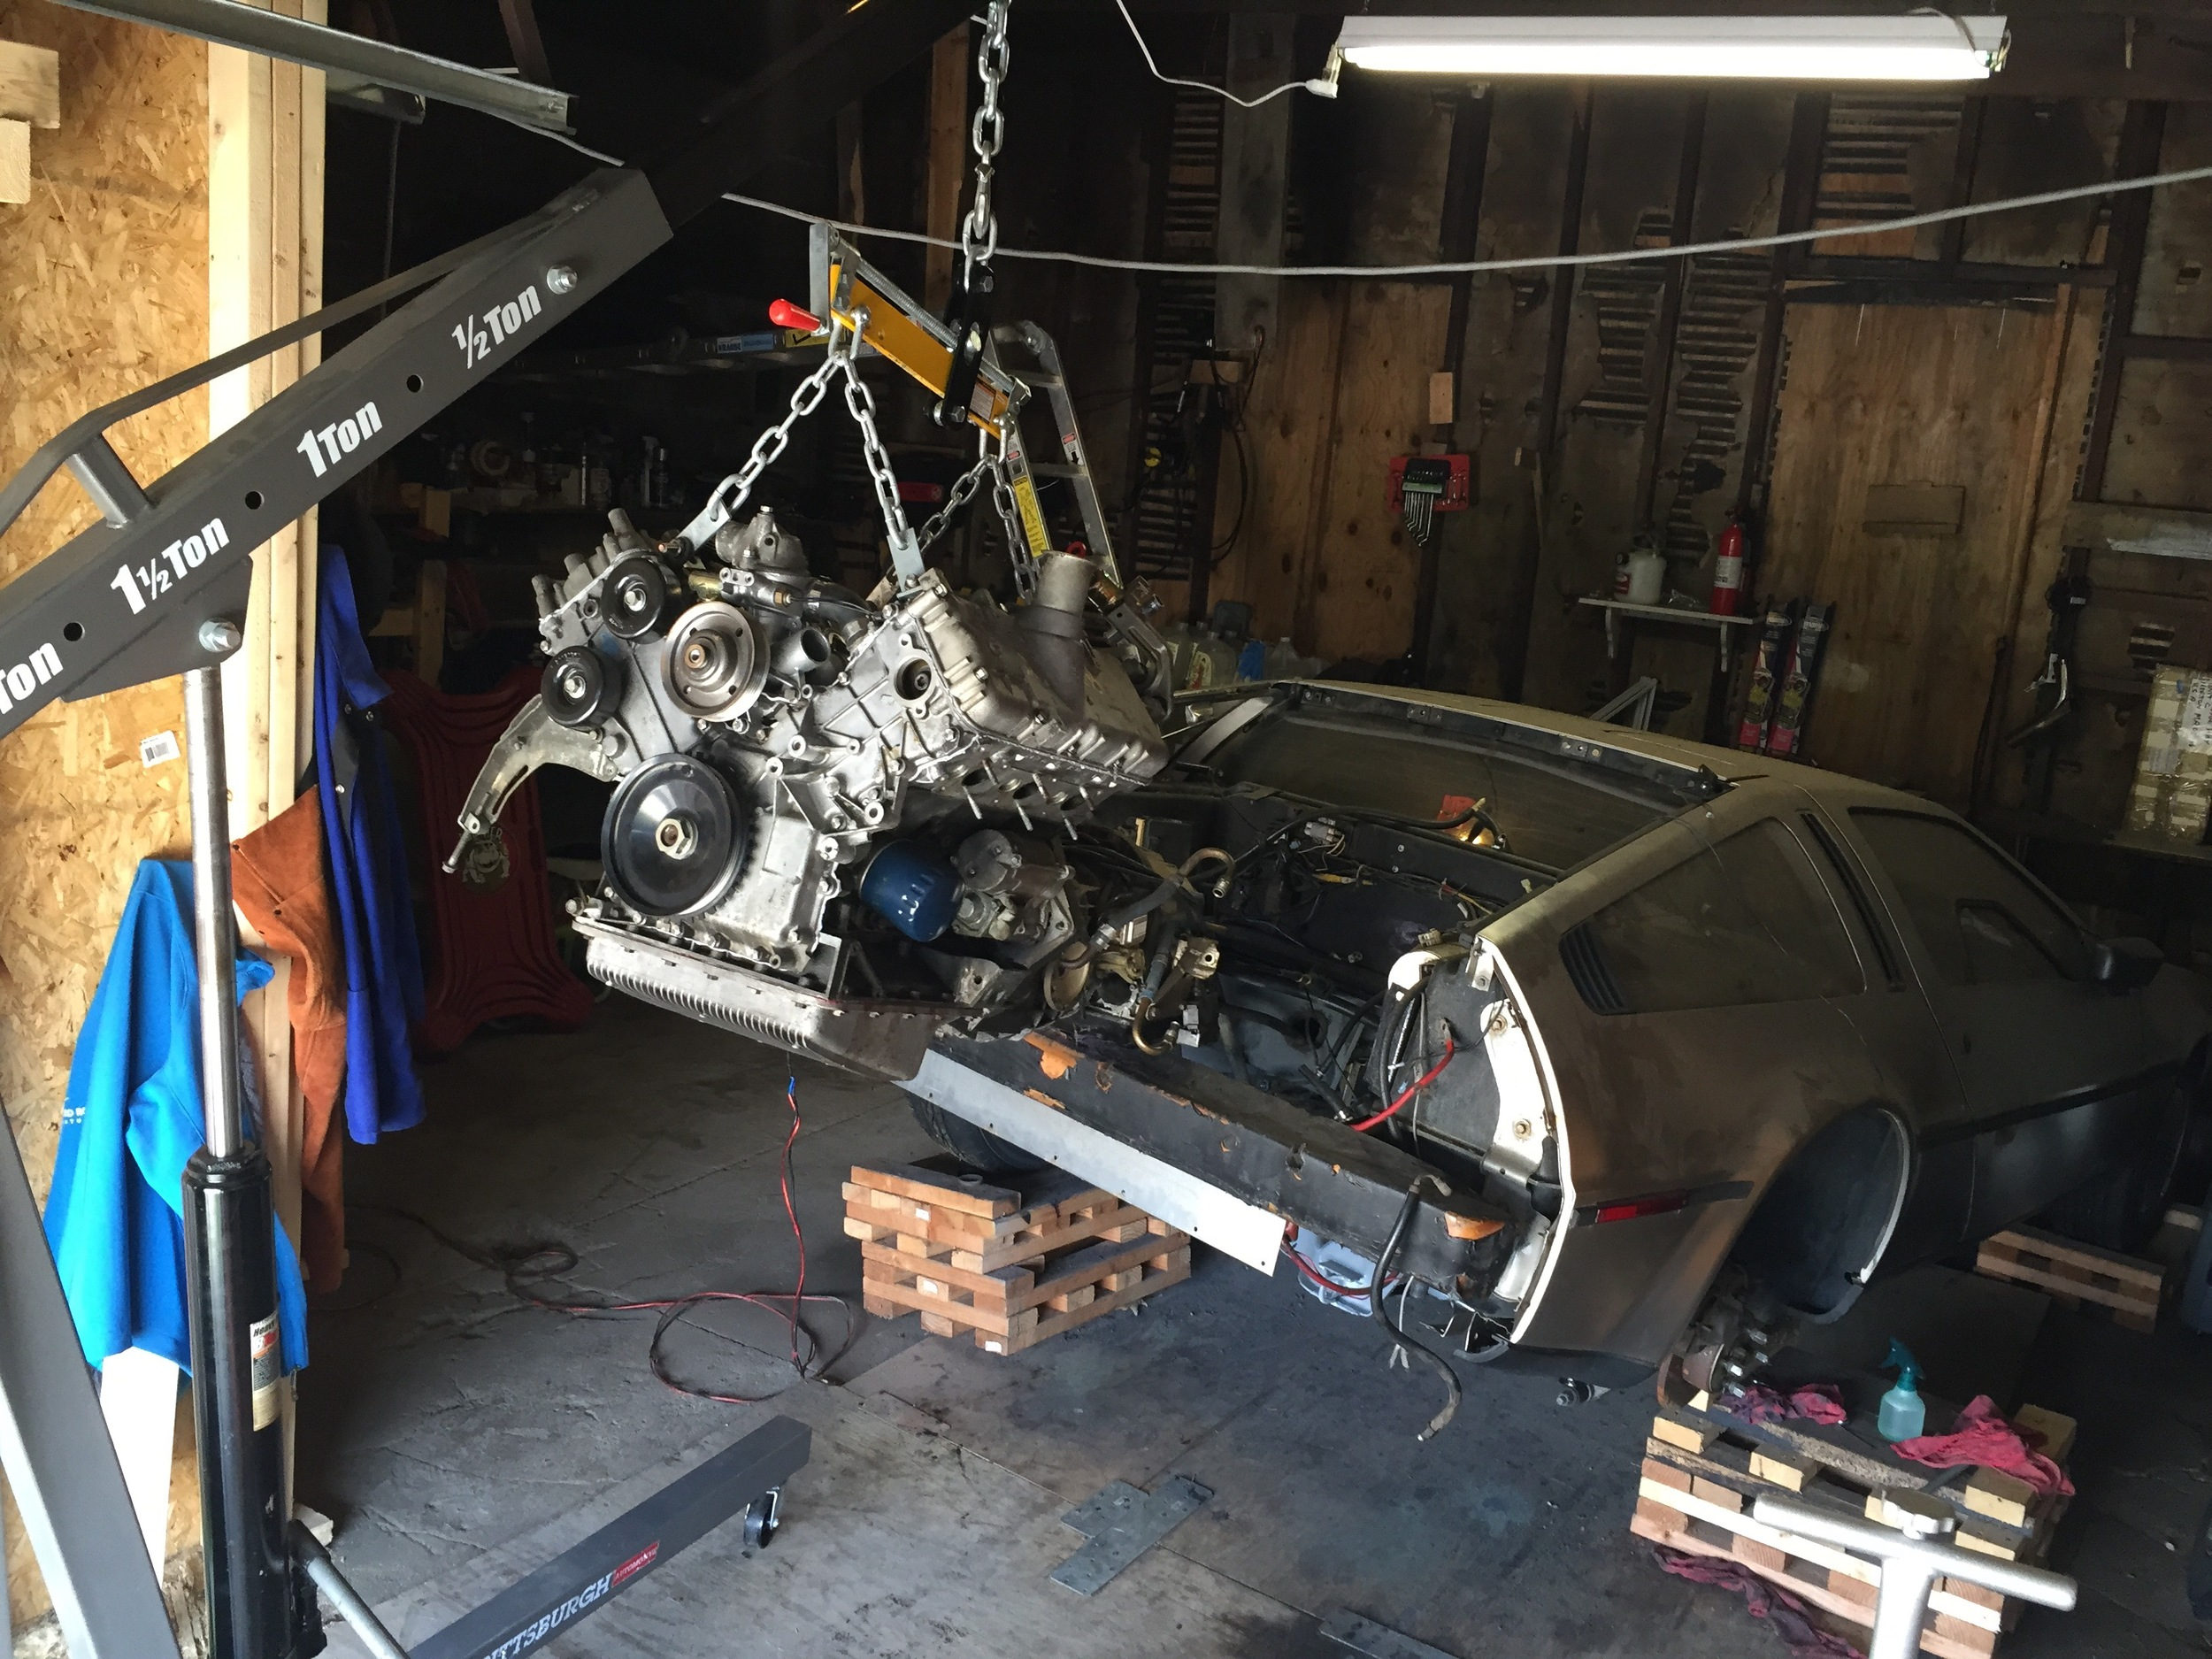 The engine lifted and ready to be installed.